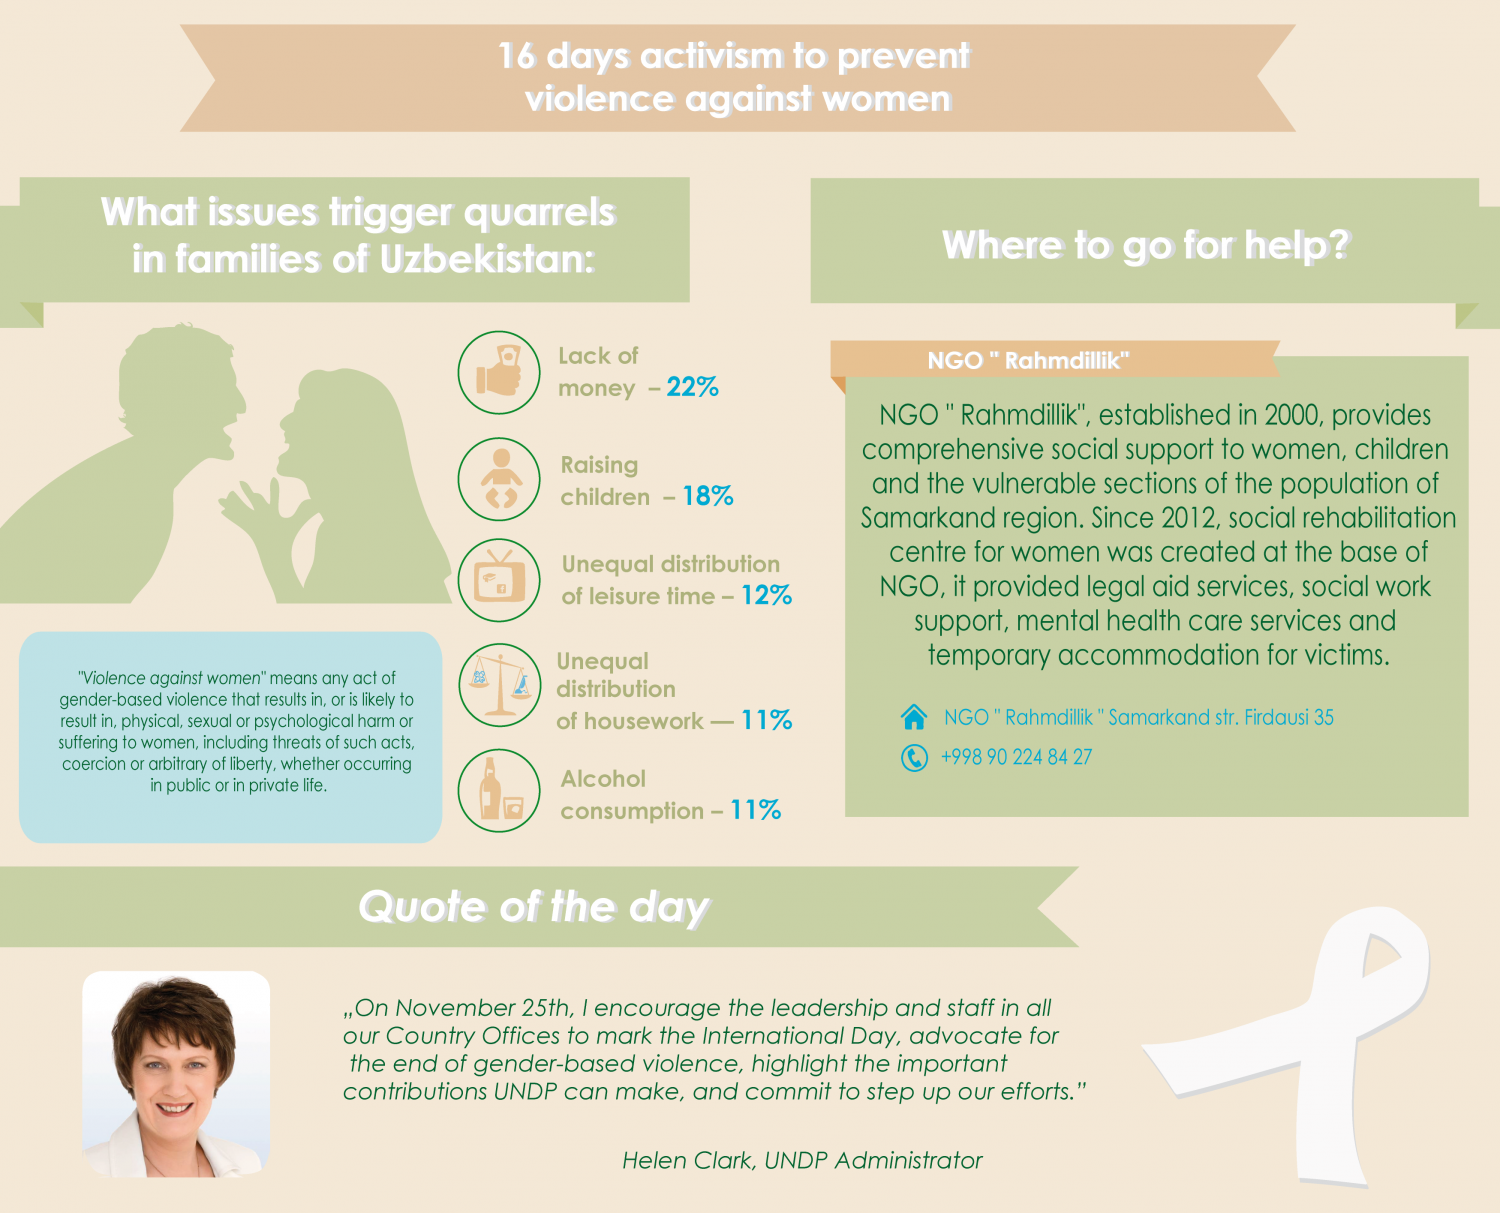 What issues trigger quarrels in families in Uzbekistan Infographic